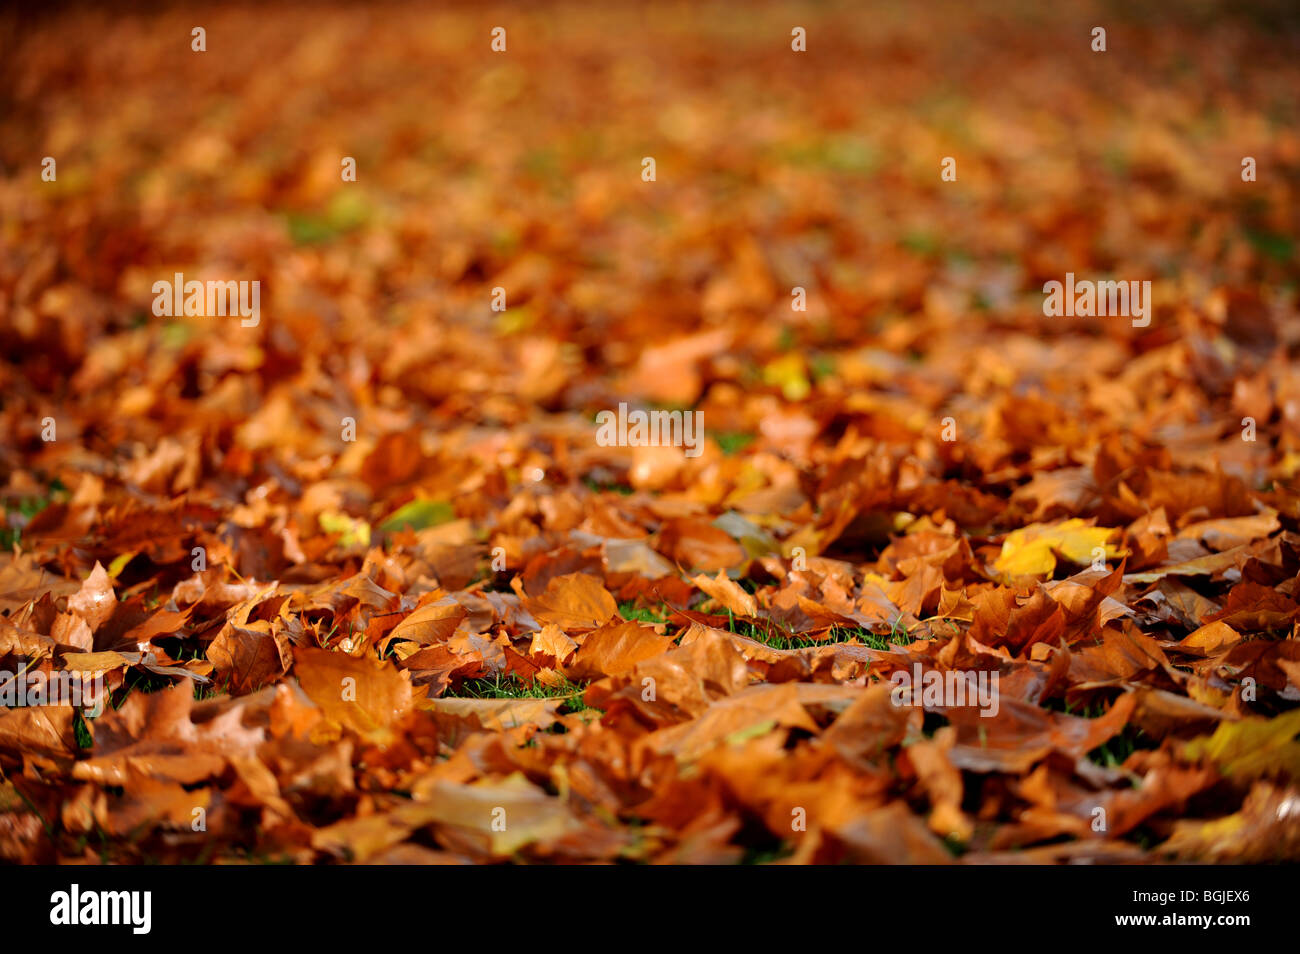 autumn leaves lie on the ground - Stock Image